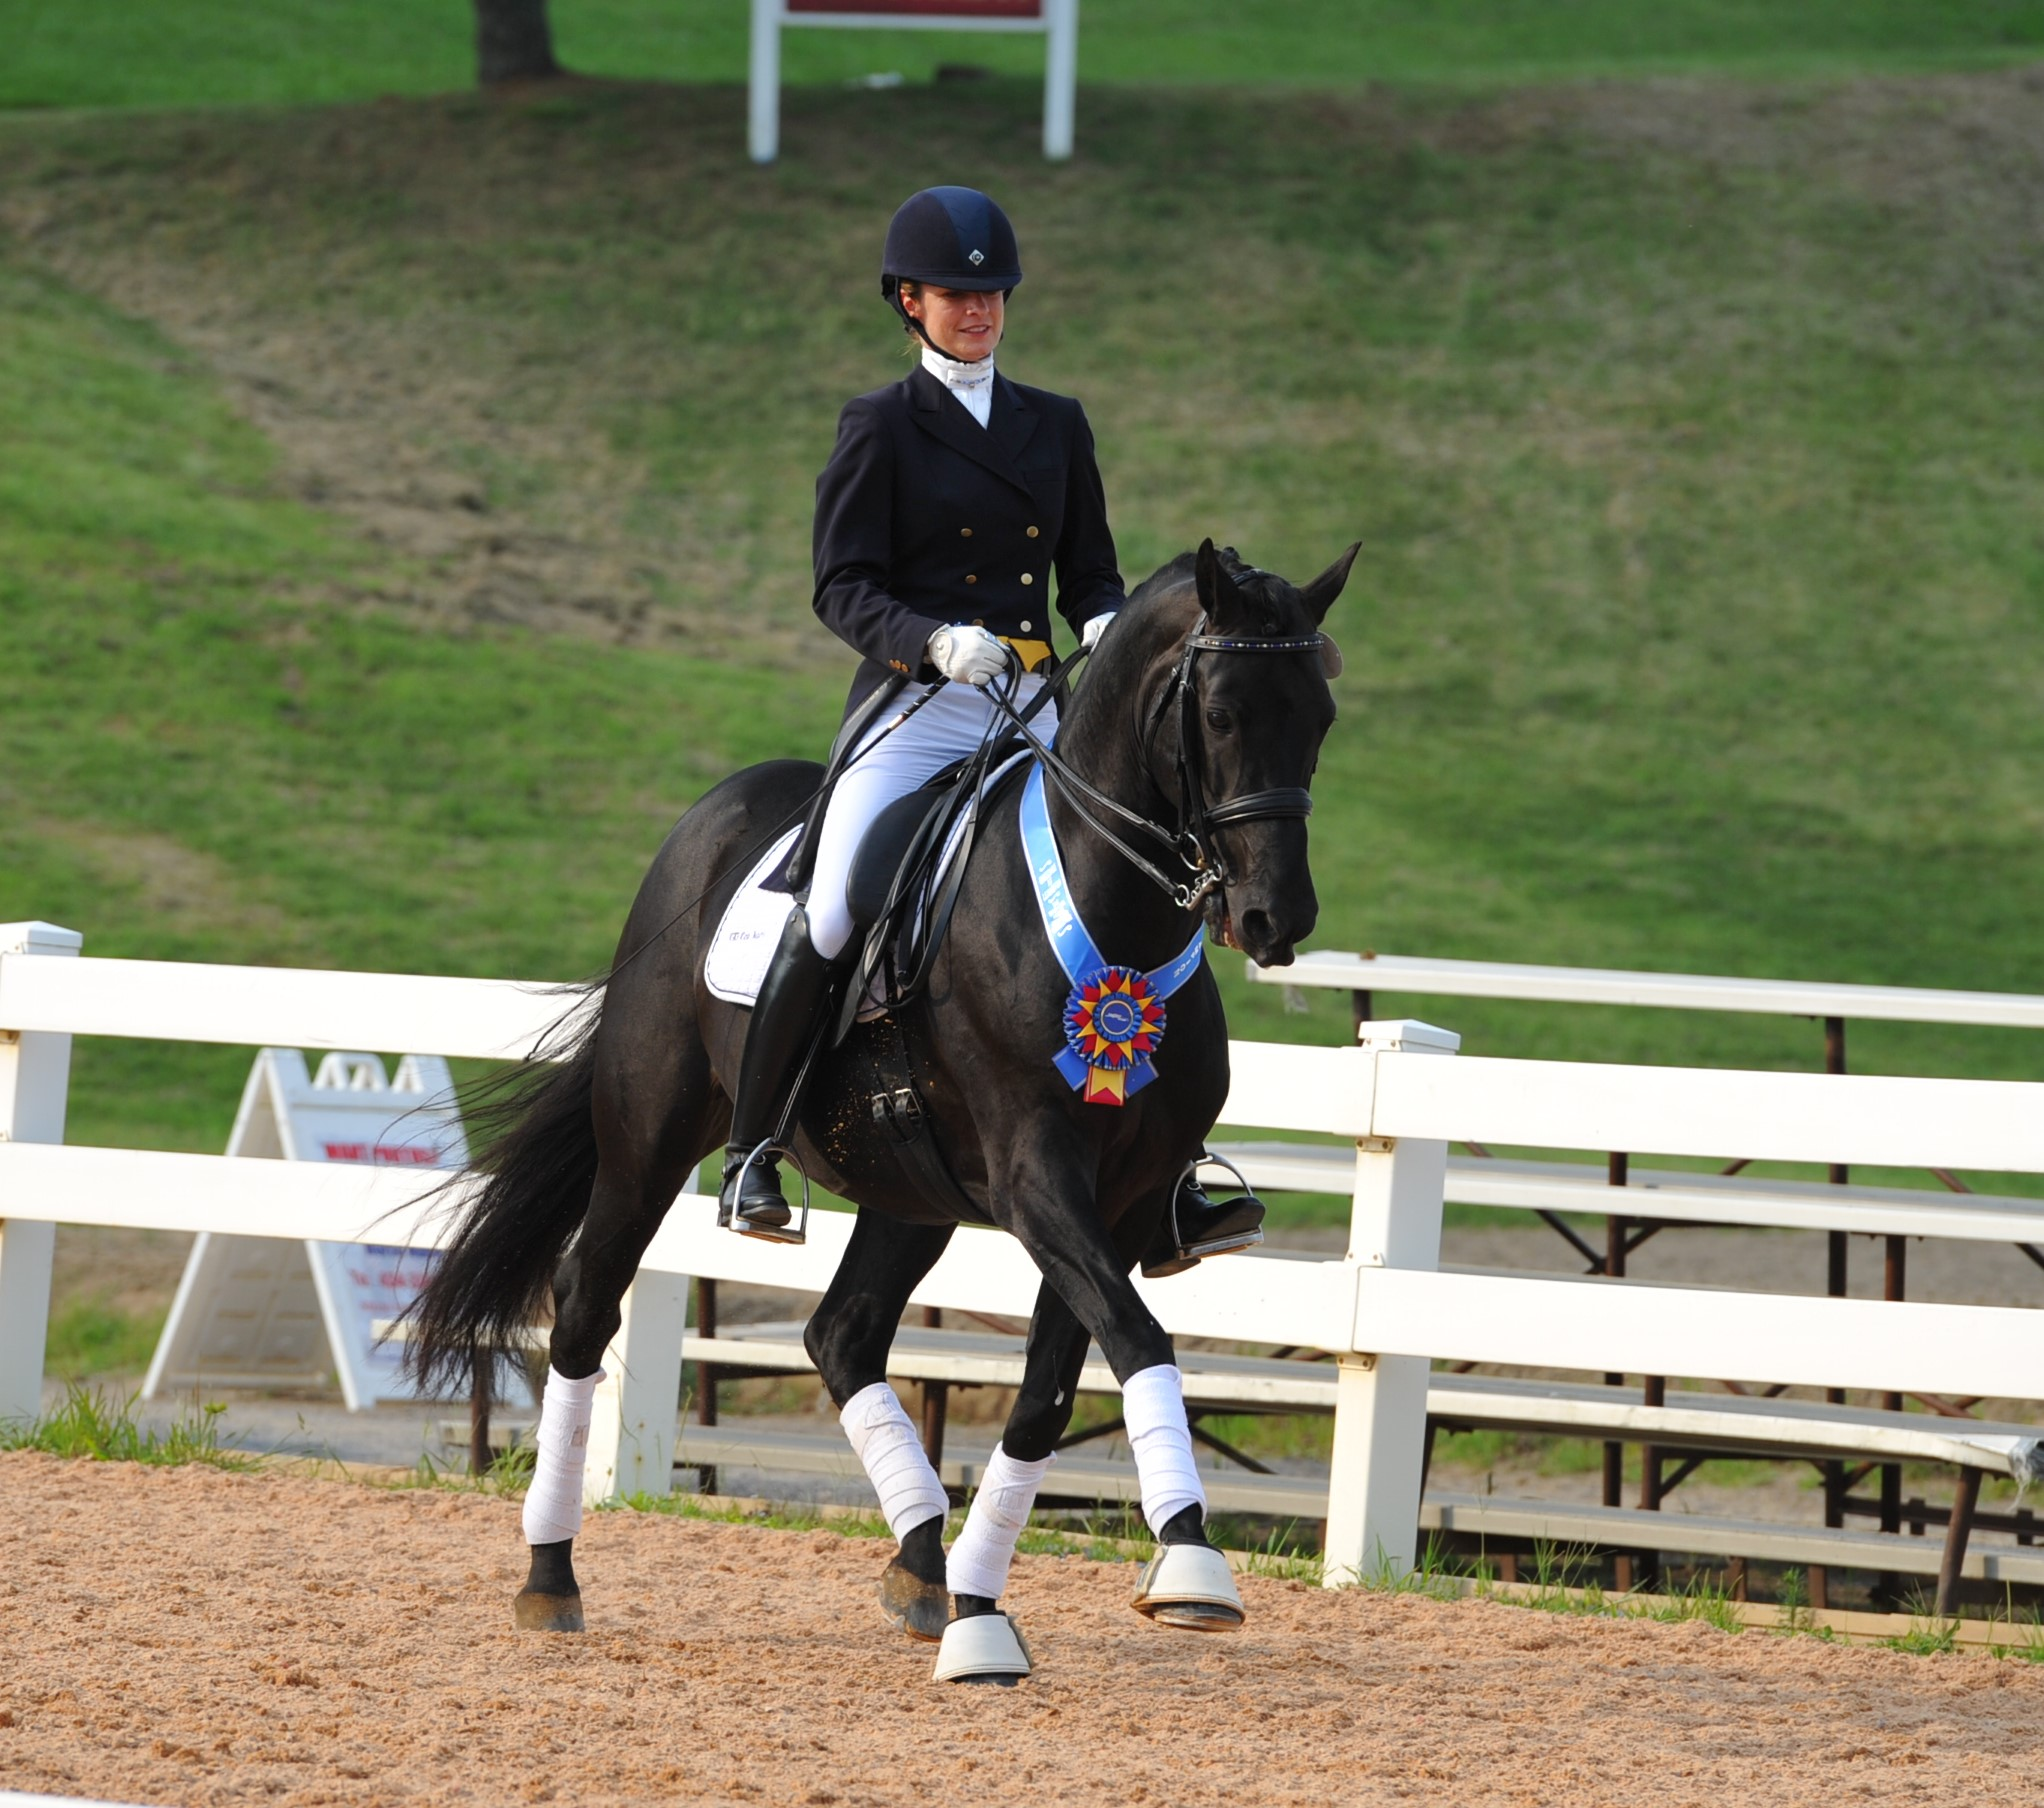 Lucy and her stallion GKB Coal Magic winning the Sporting Horse Amateur Challenge in Lexington, Virginia